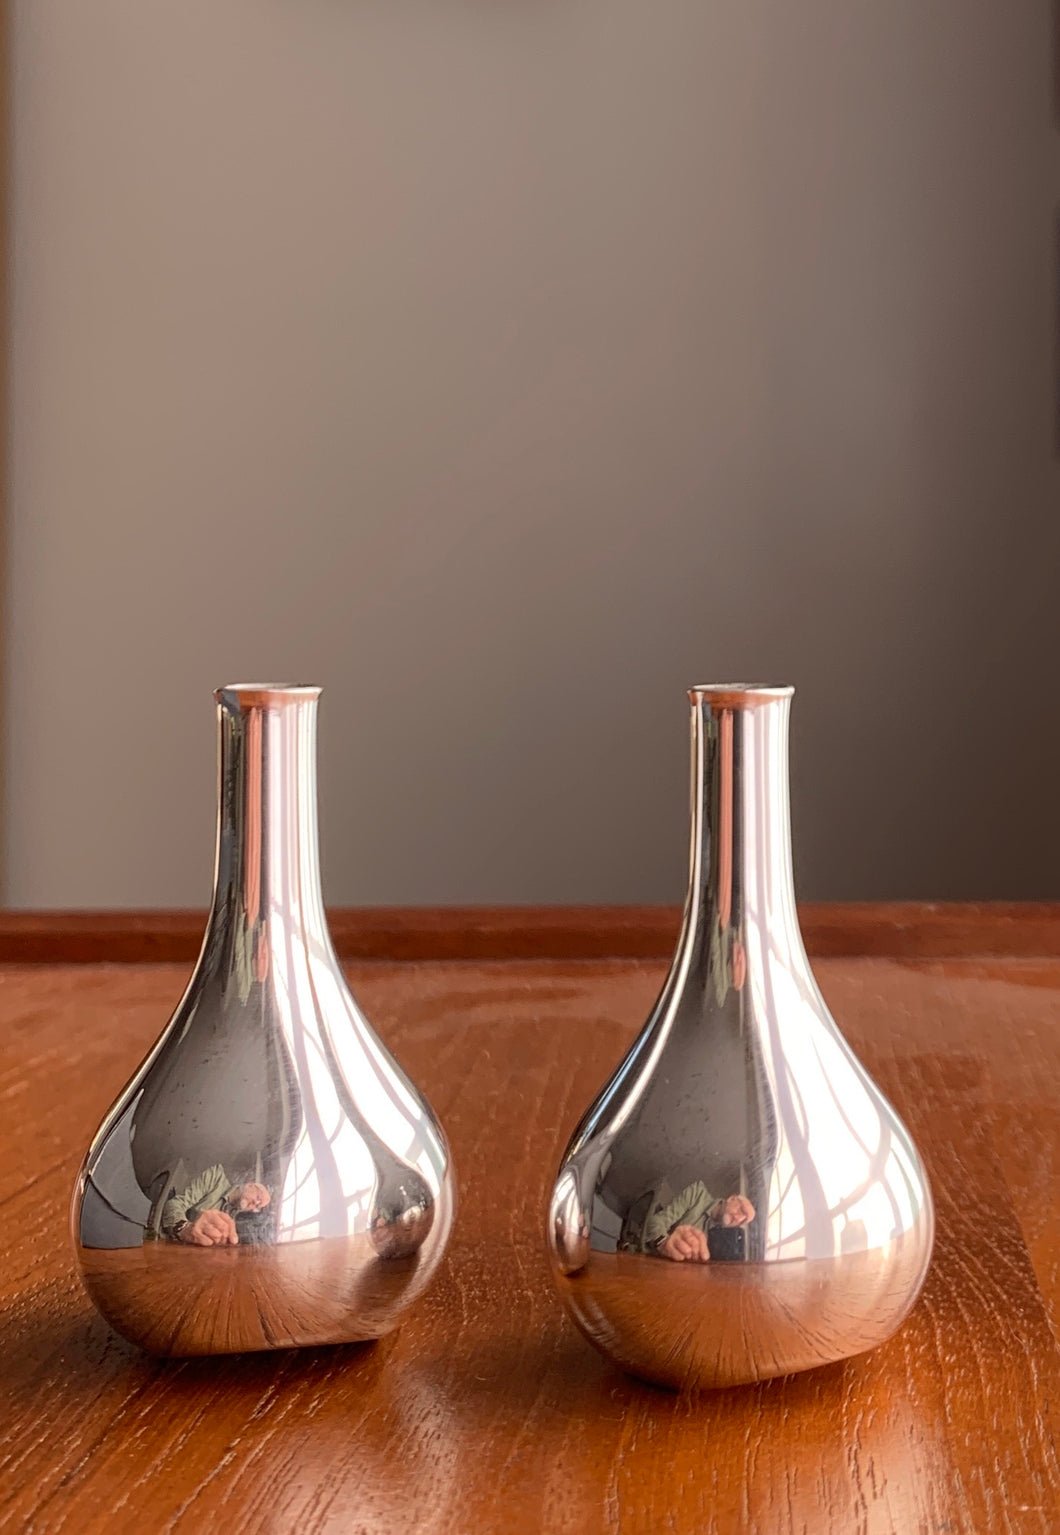 Dansk Design 'Silver Onion' Candle Holders